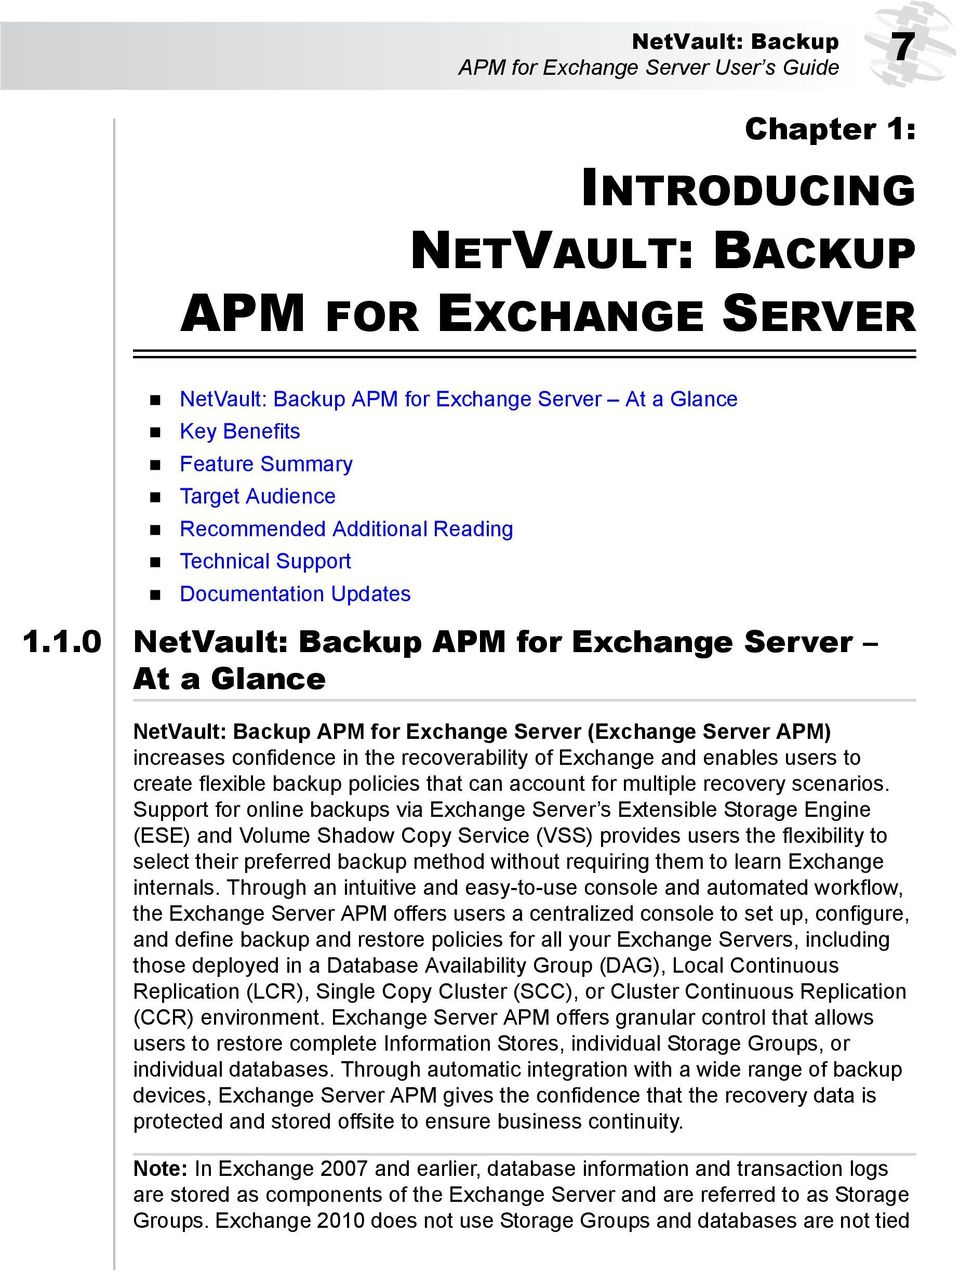 1.0 NetVault: Backup APM for Exchange Server At a Glance NetVault: Backup APM for Exchange Server (Exchange Server APM) increases confidence in the recoverability of Exchange and enables users to